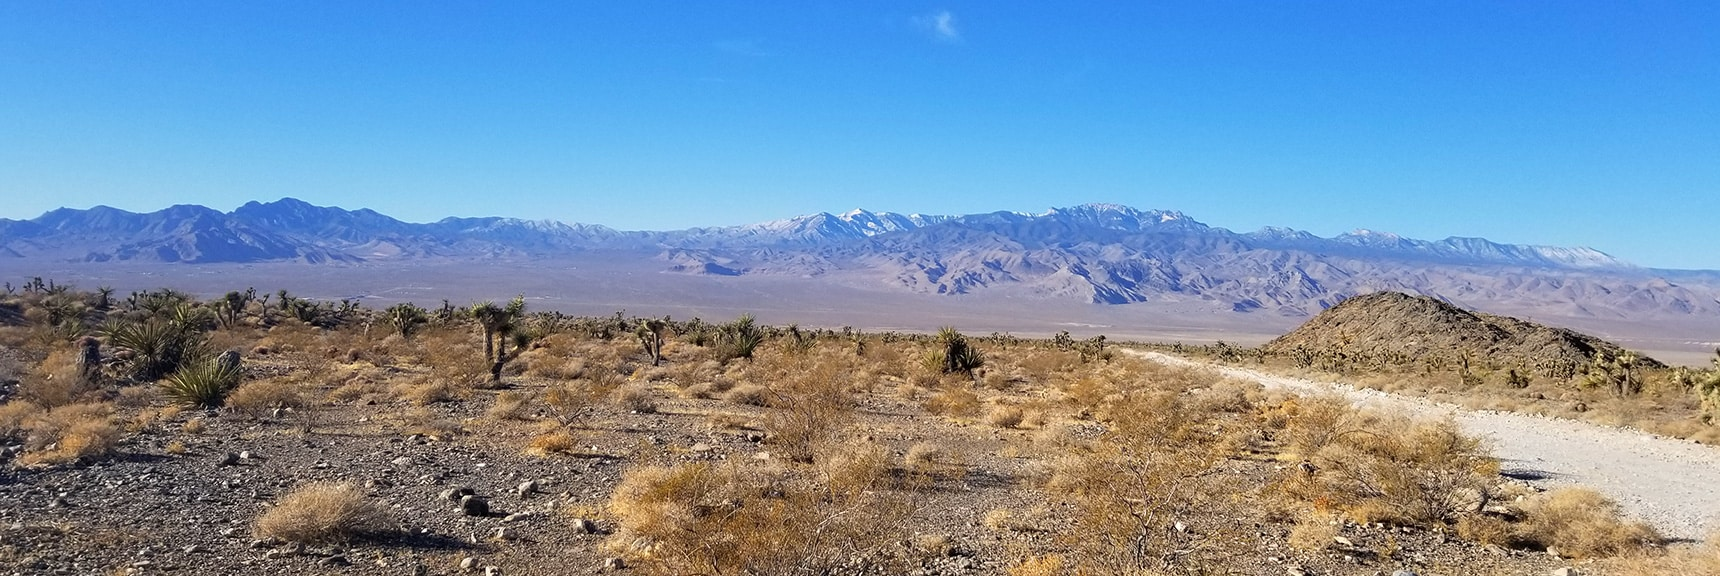 View Down Mormon Well Road Toward Mt. Charleston and La Madre Mountain Wilderness from Intersection of Mormon Well Road and Gass Peak Road | Gass Peak Road Circuit | Desert National Wildlife Refuge | Nevada